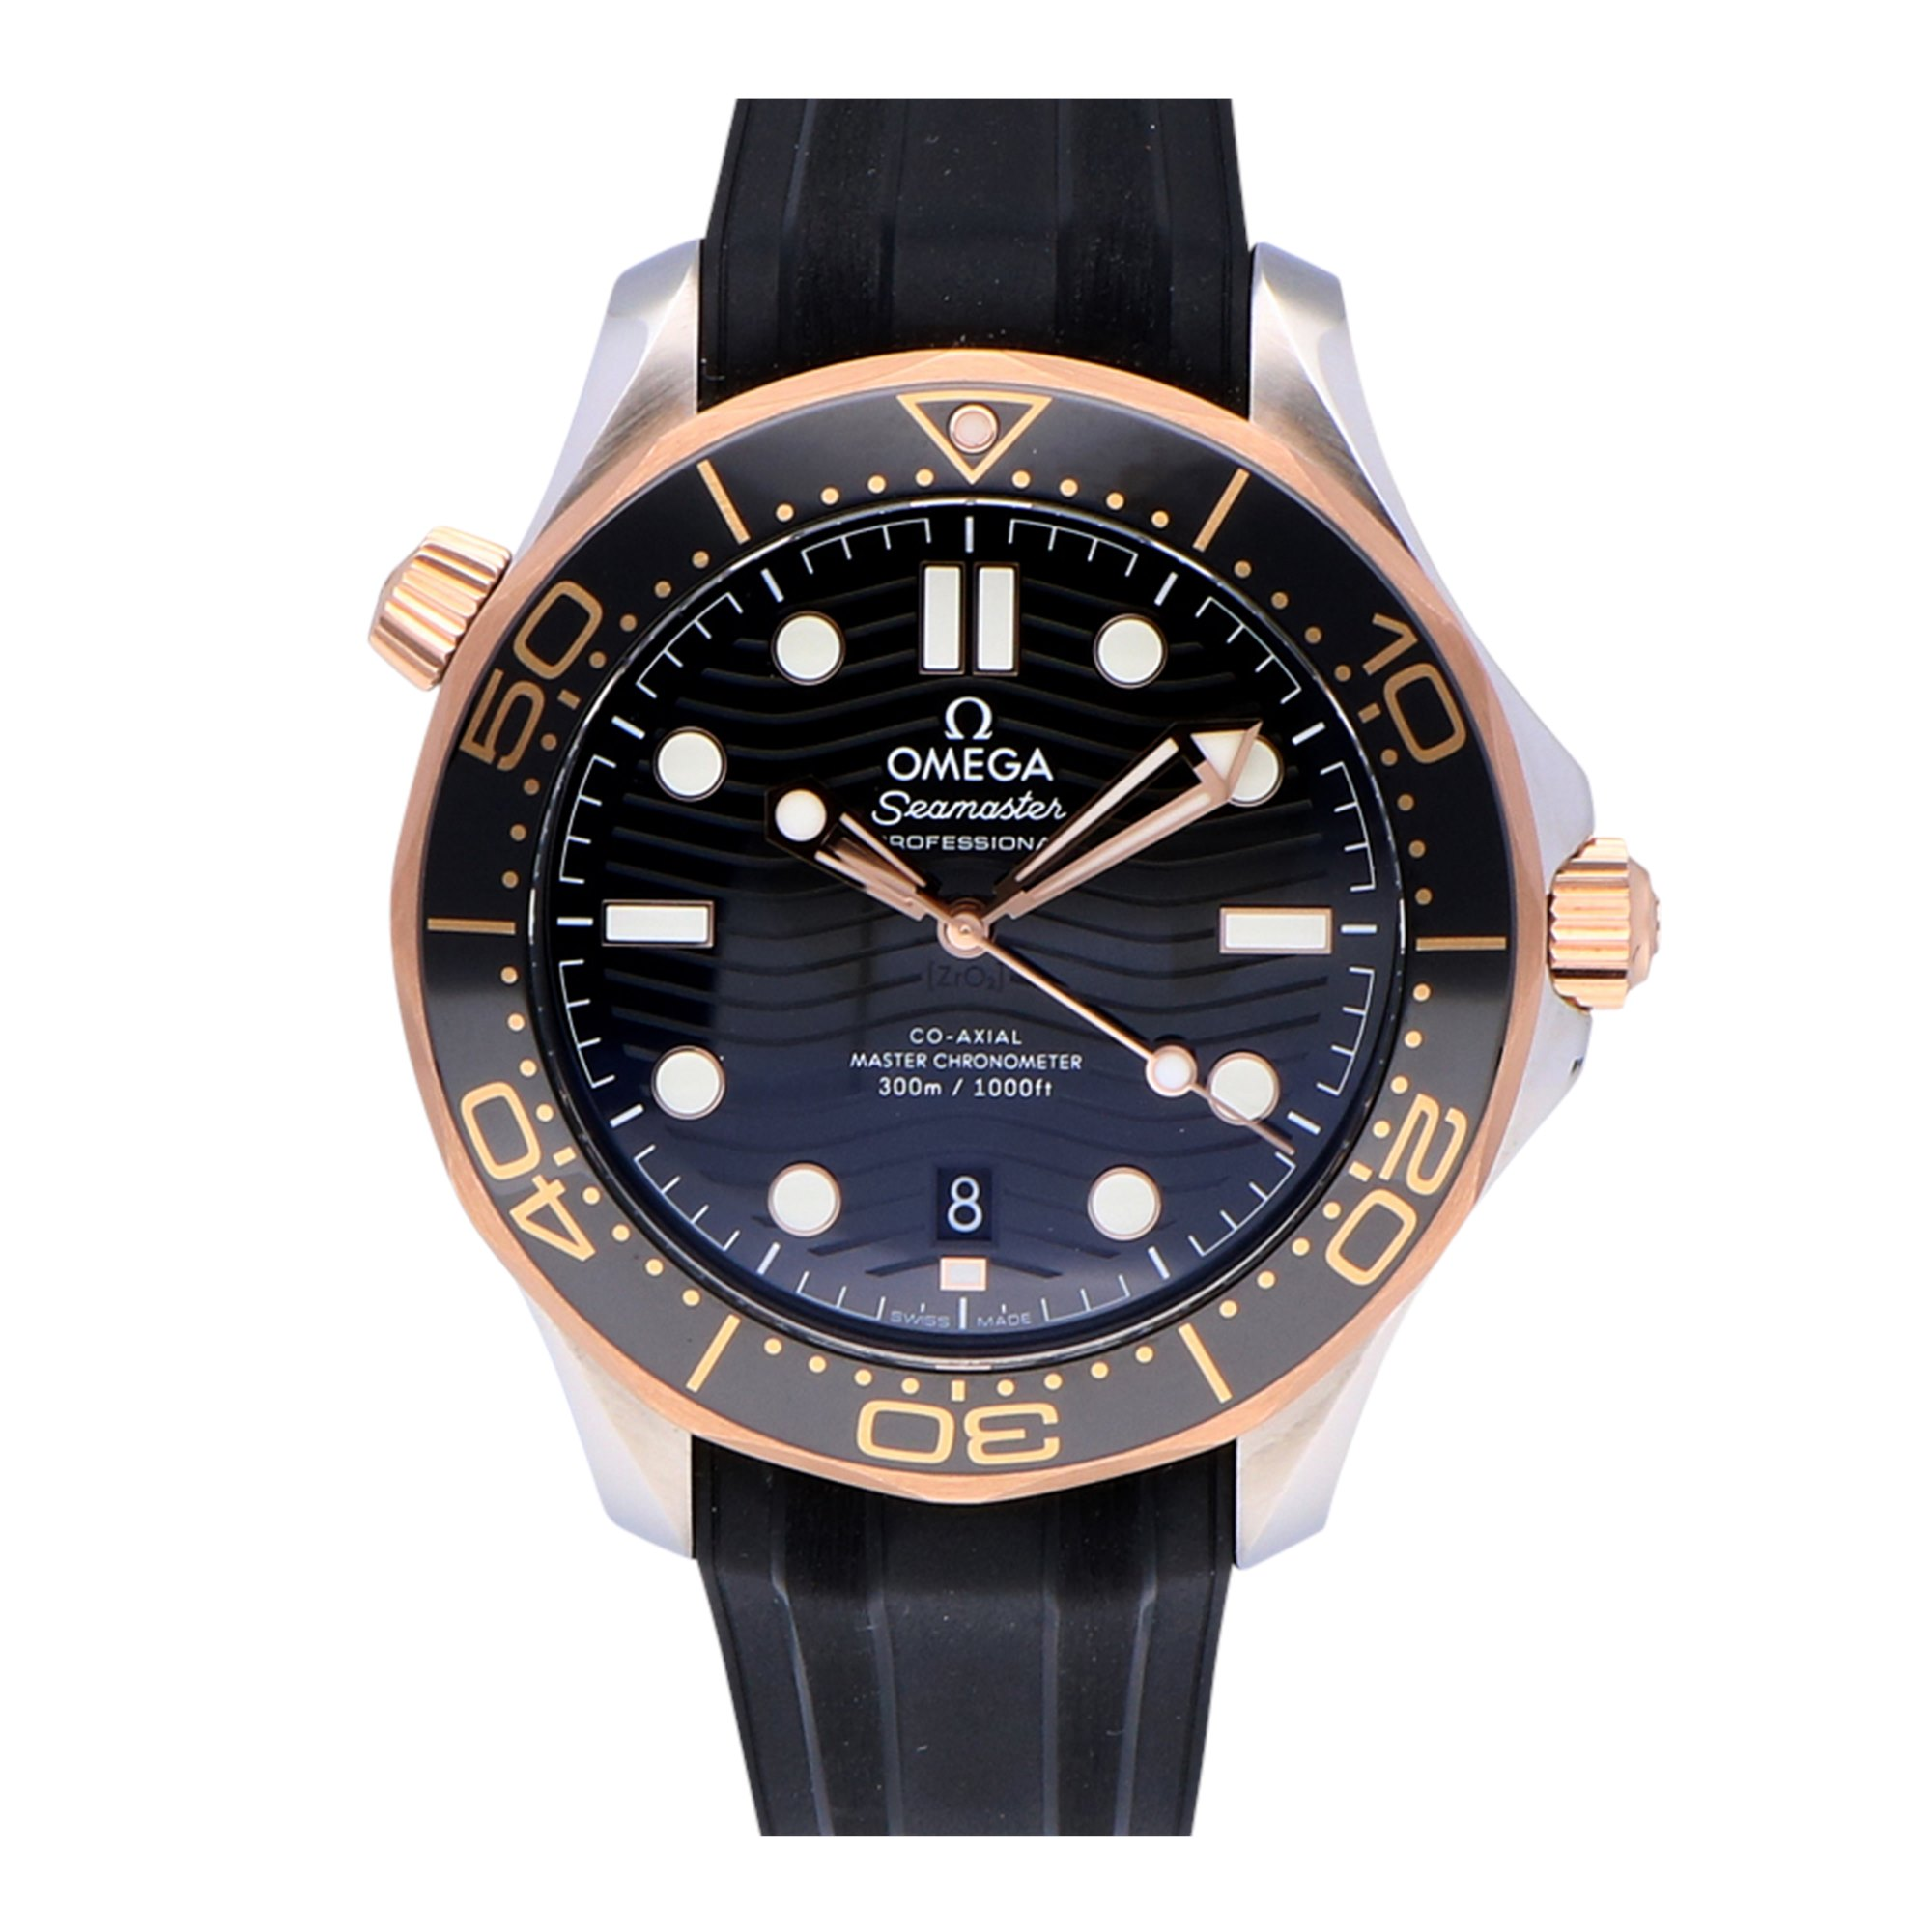 Omega Seamaster Stainless Steel & Rose Gold 210.22.42.20.01.002